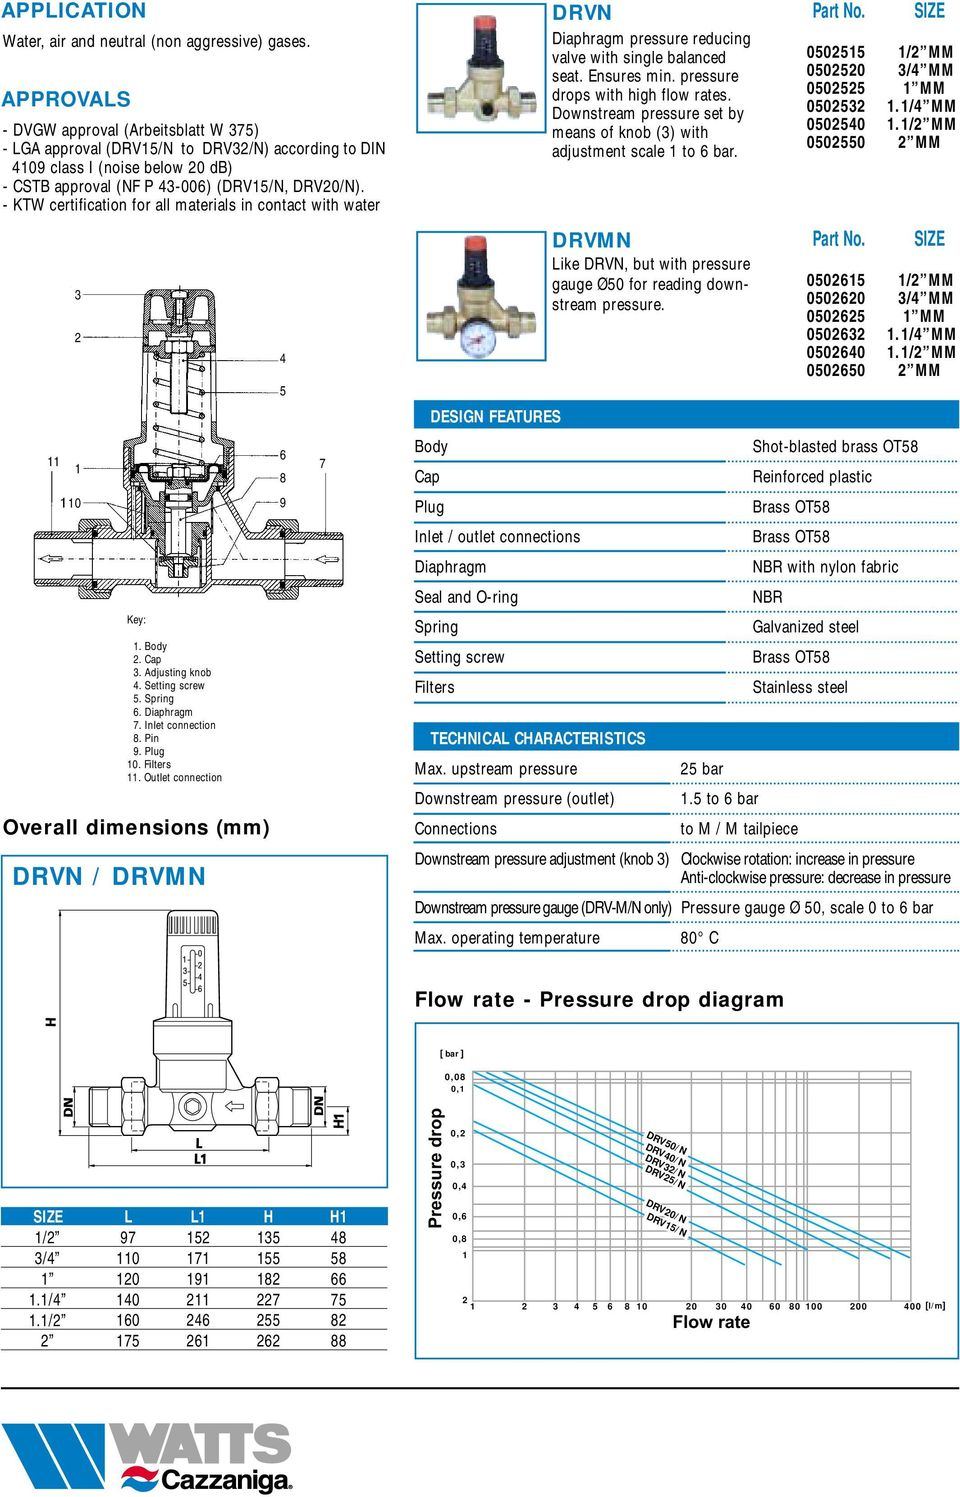 Outlet connection Overall dimensions (mm) DRVN / DRVMN Plug Inlet / outlet connections Diaphragm Seal and O-ring Setting screw Filters DRVN Diaphragm pressure reducing valve with single balanced seat.